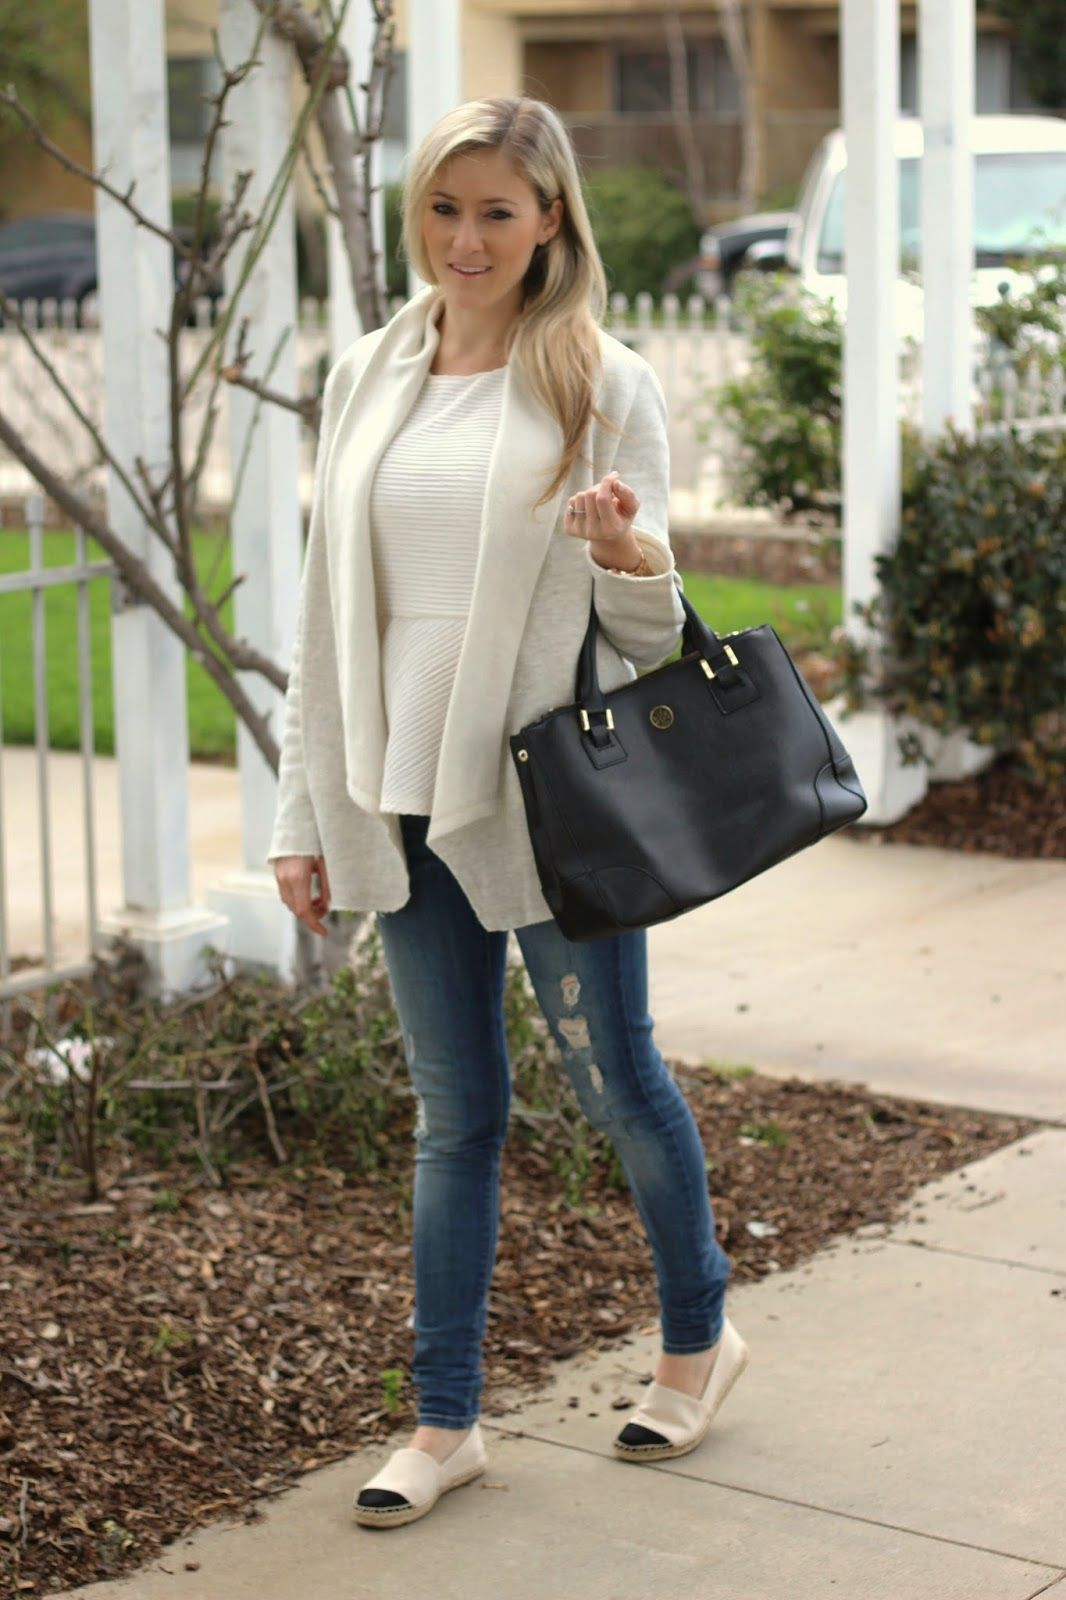 Skinny jeans with espadrilles